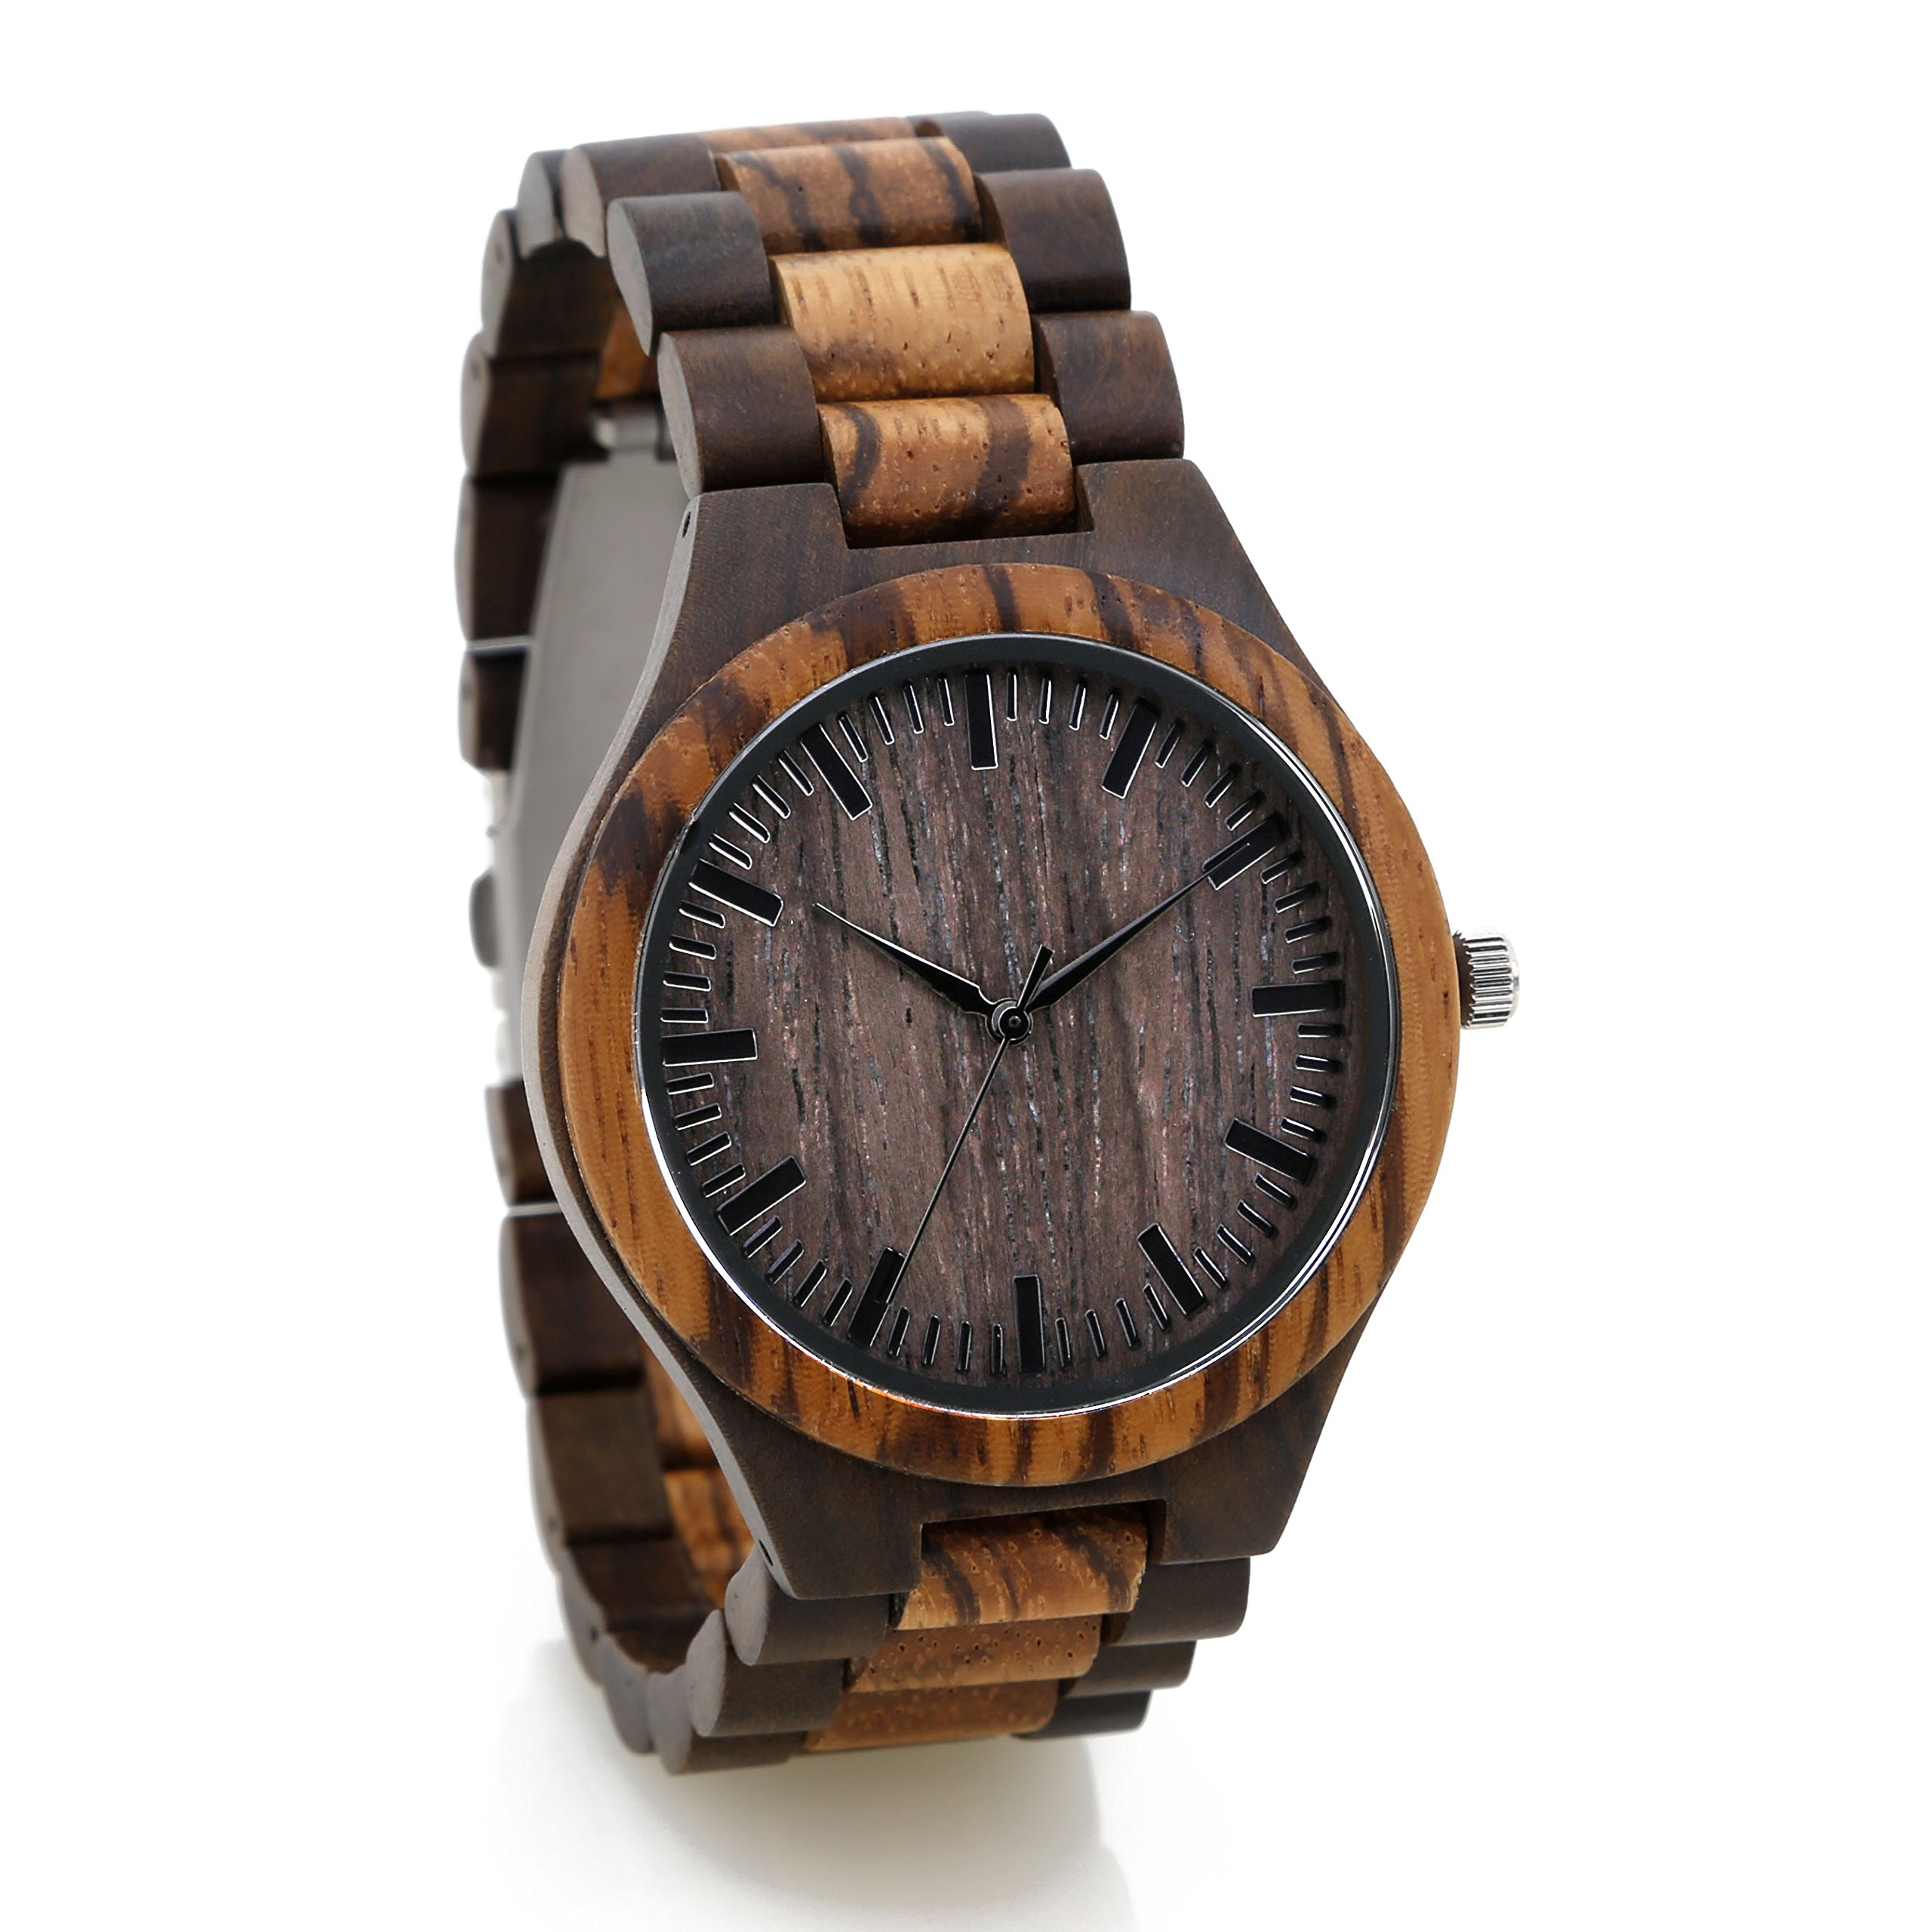 Personalized Engraved Wooden Watch Custom Wood Watch Fathers Day Gift Groomsman Gift Anniversary Wedding Gift Engraved All Natural Wood- Free Gift Box by Surf To Summit